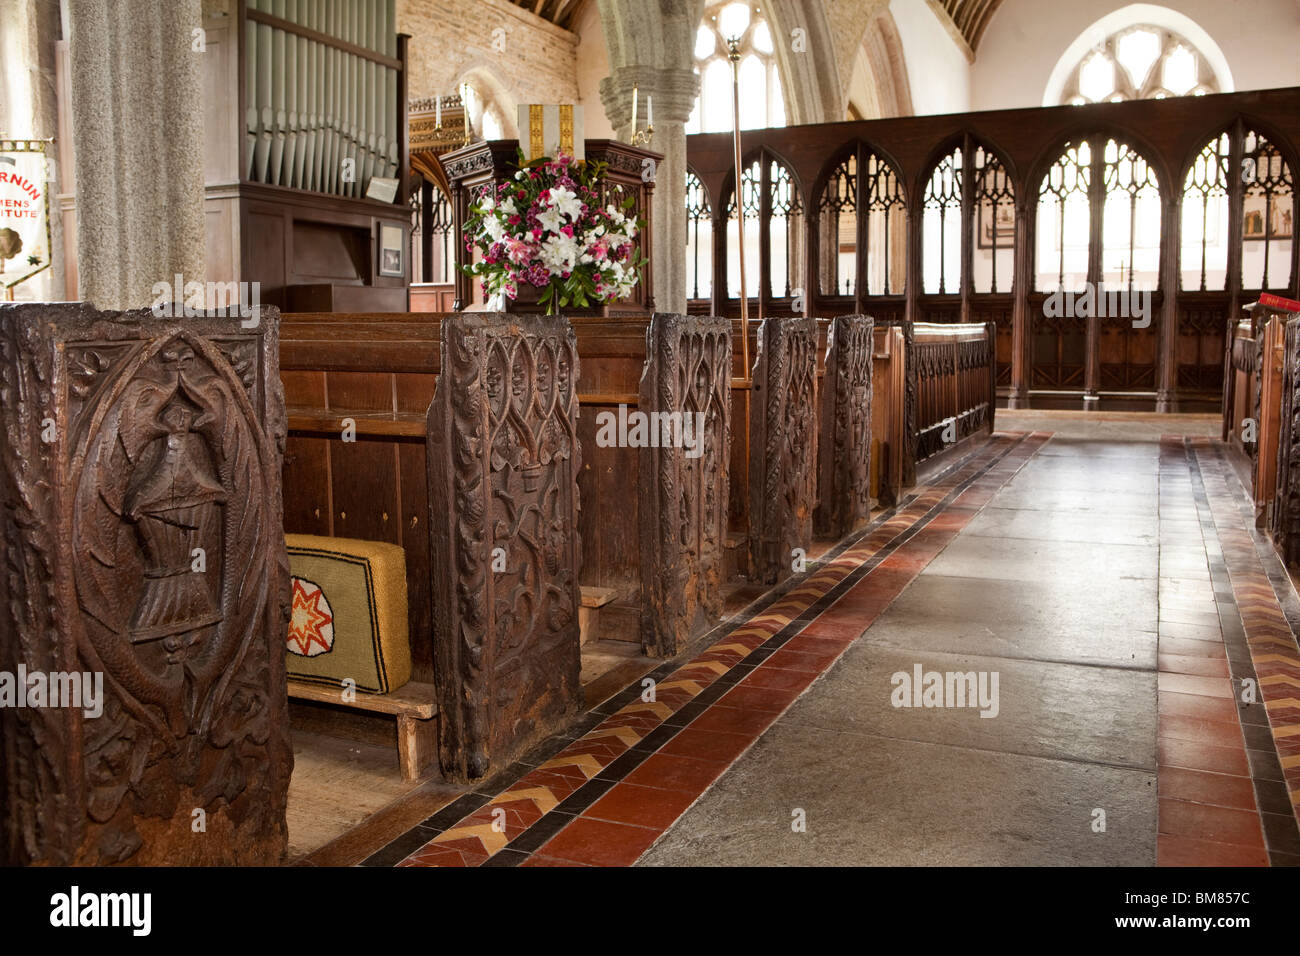 UK, Cornwall, Altarnun, St Nonna's Parish Church interior, 1500s carved wooden pew ends - Stock Image